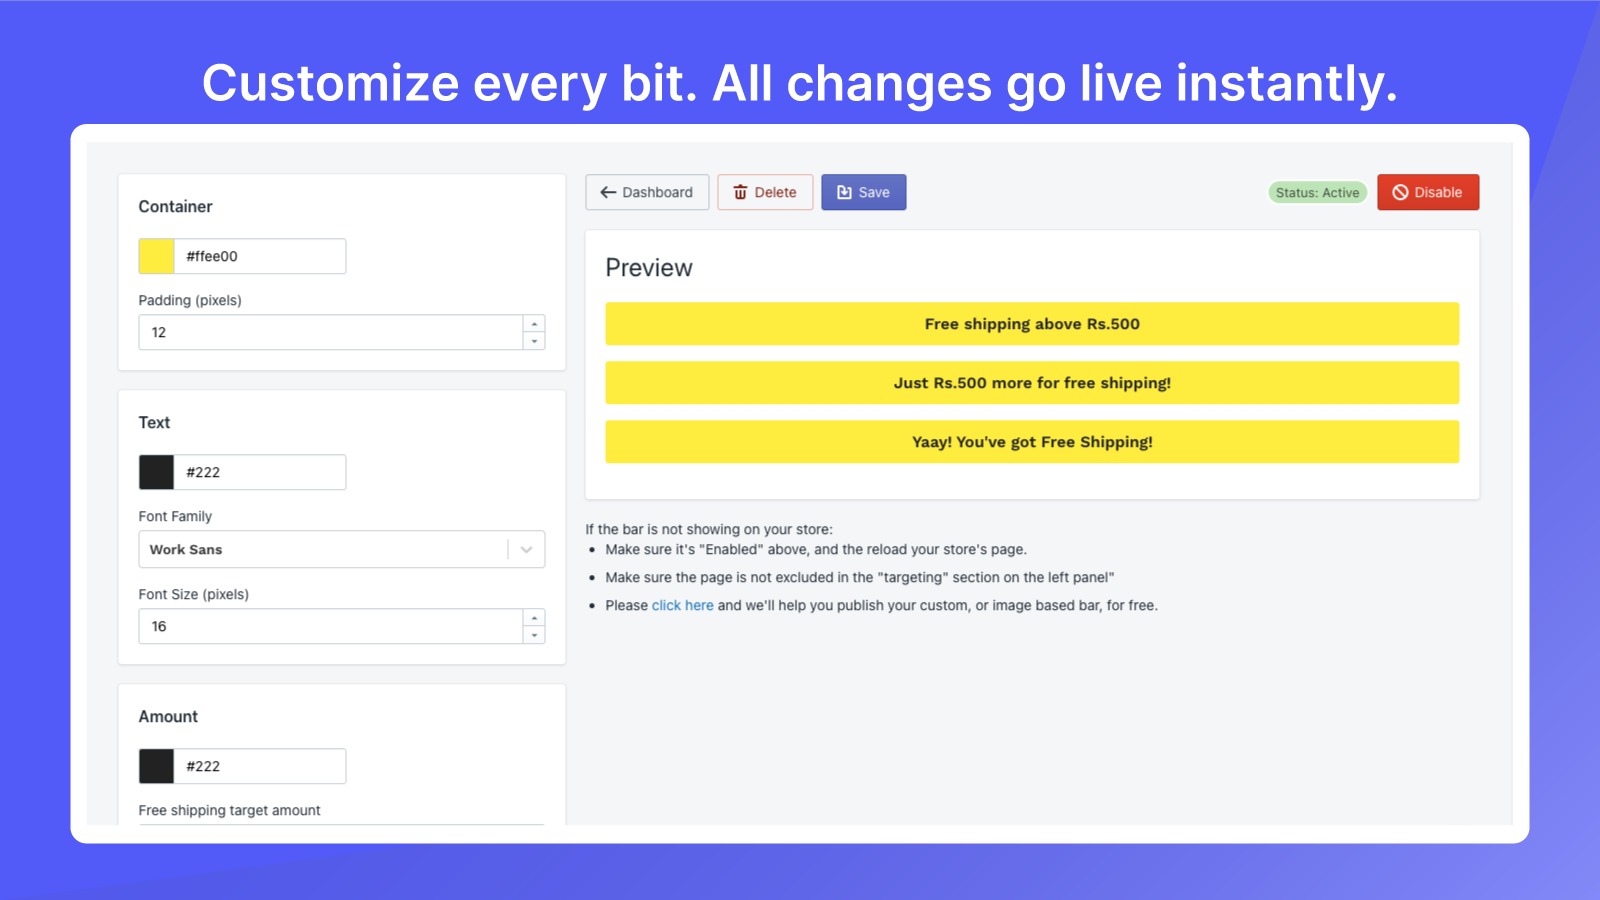 Customize every bit. All changes go live instantly.